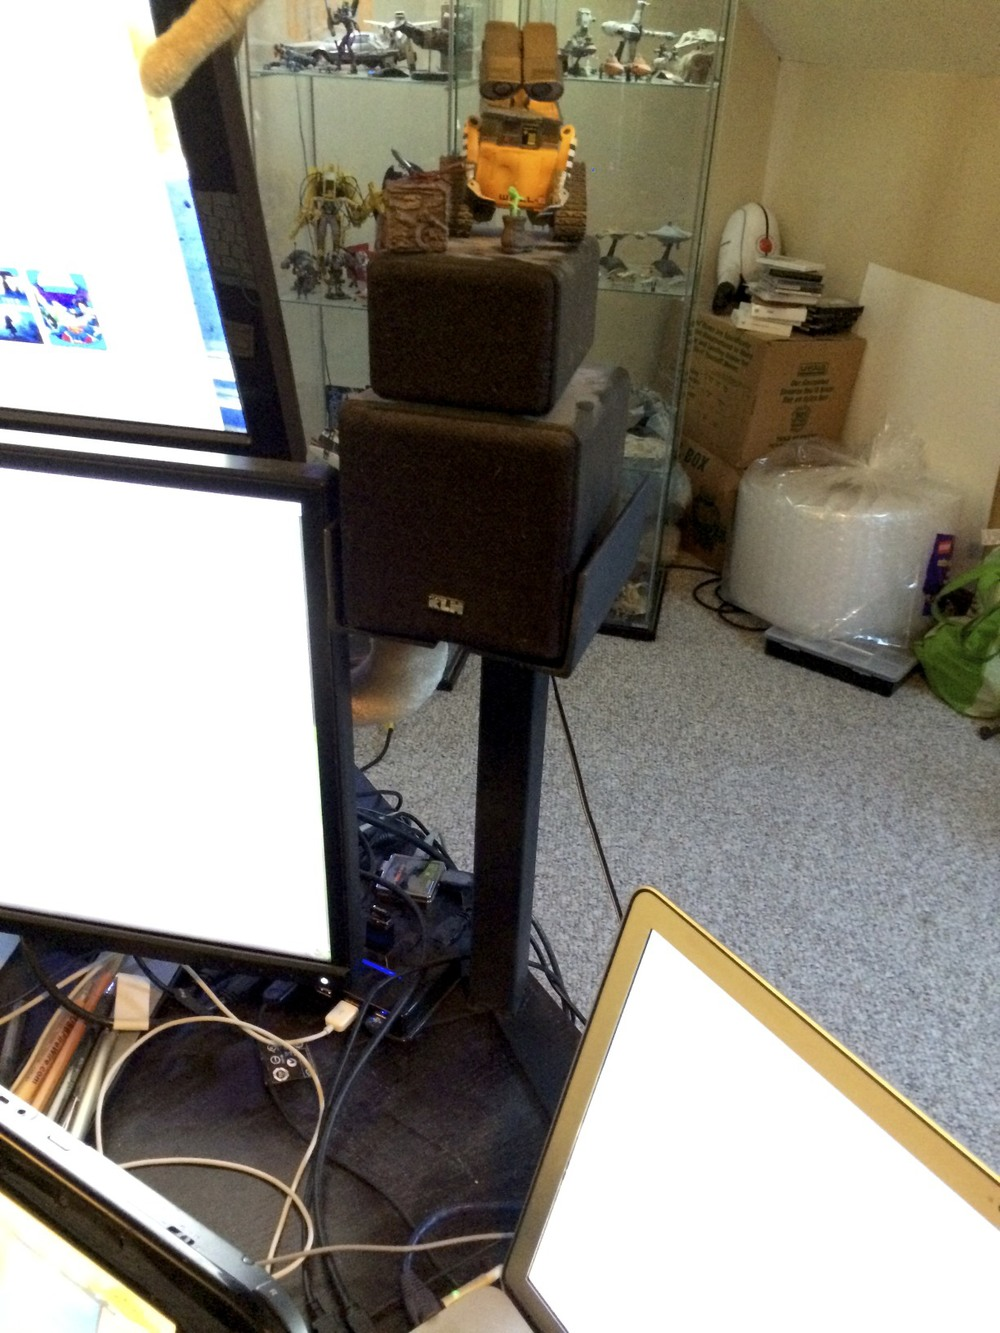 The right speaker stand sits between the stacked monitors and my MacBook Pro.